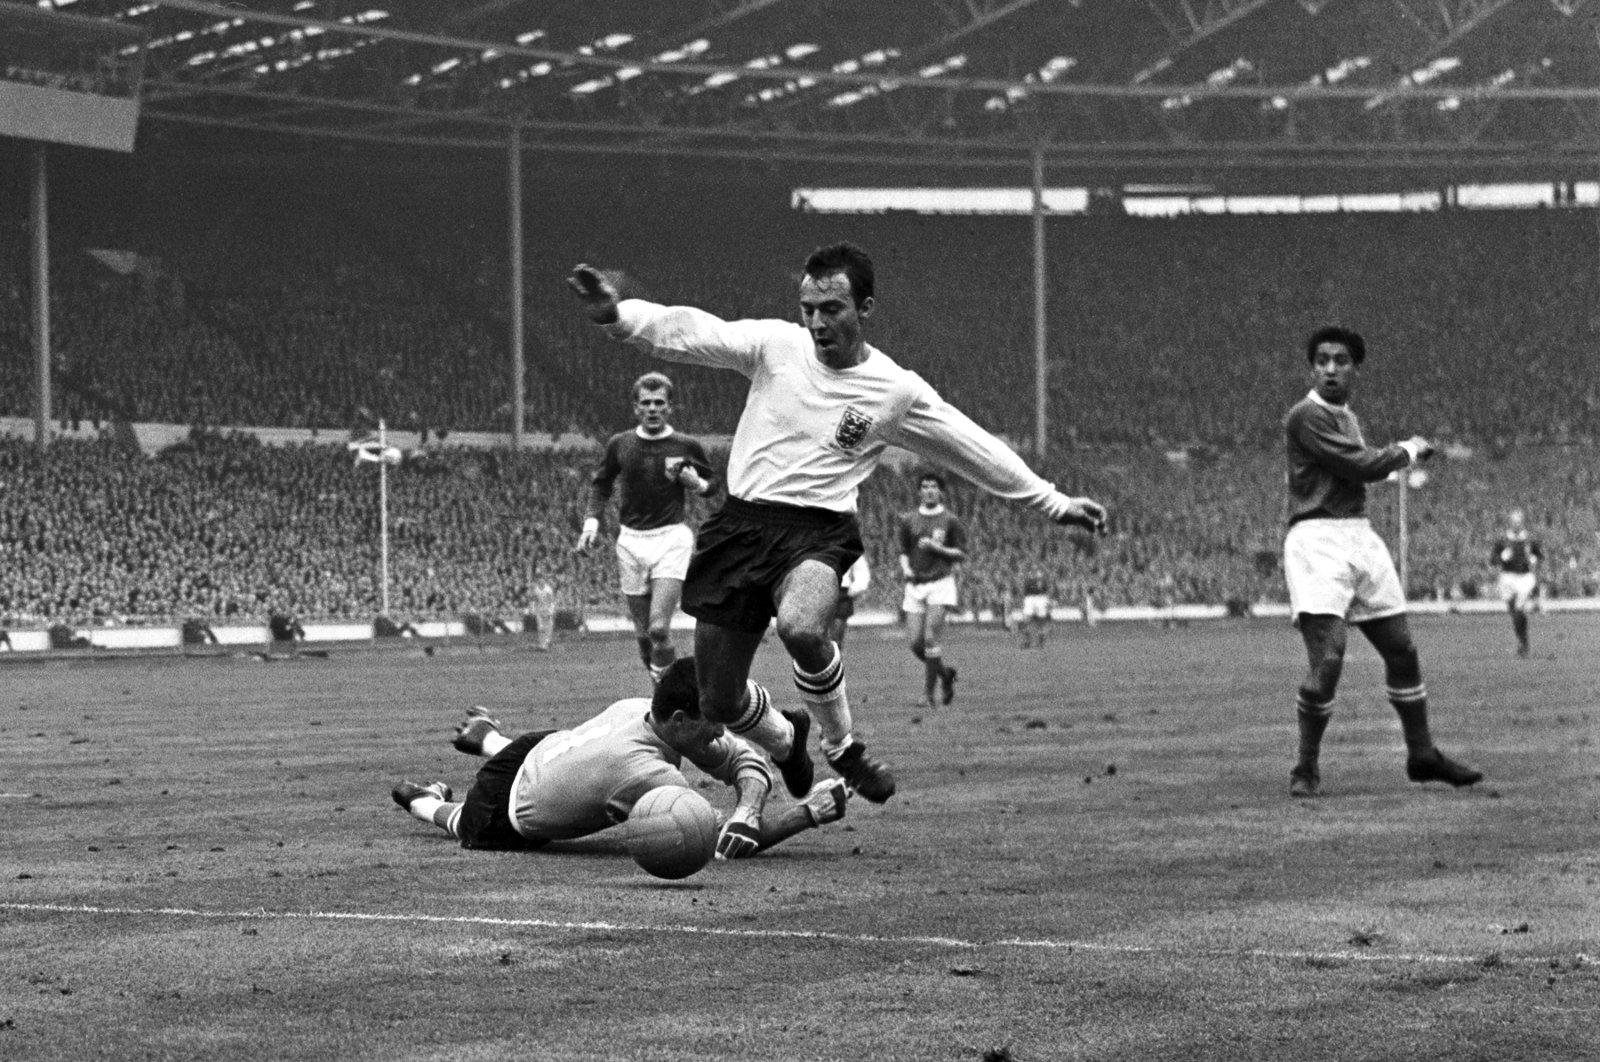 England striker Jimmy Greaves vies for the ball against Yugoslav goalkeeper Milutin Soskic during a Football Association match between England and the Rest of the World at Wembley Stadium, London, Oct. 23, 1965. (AP Photo)